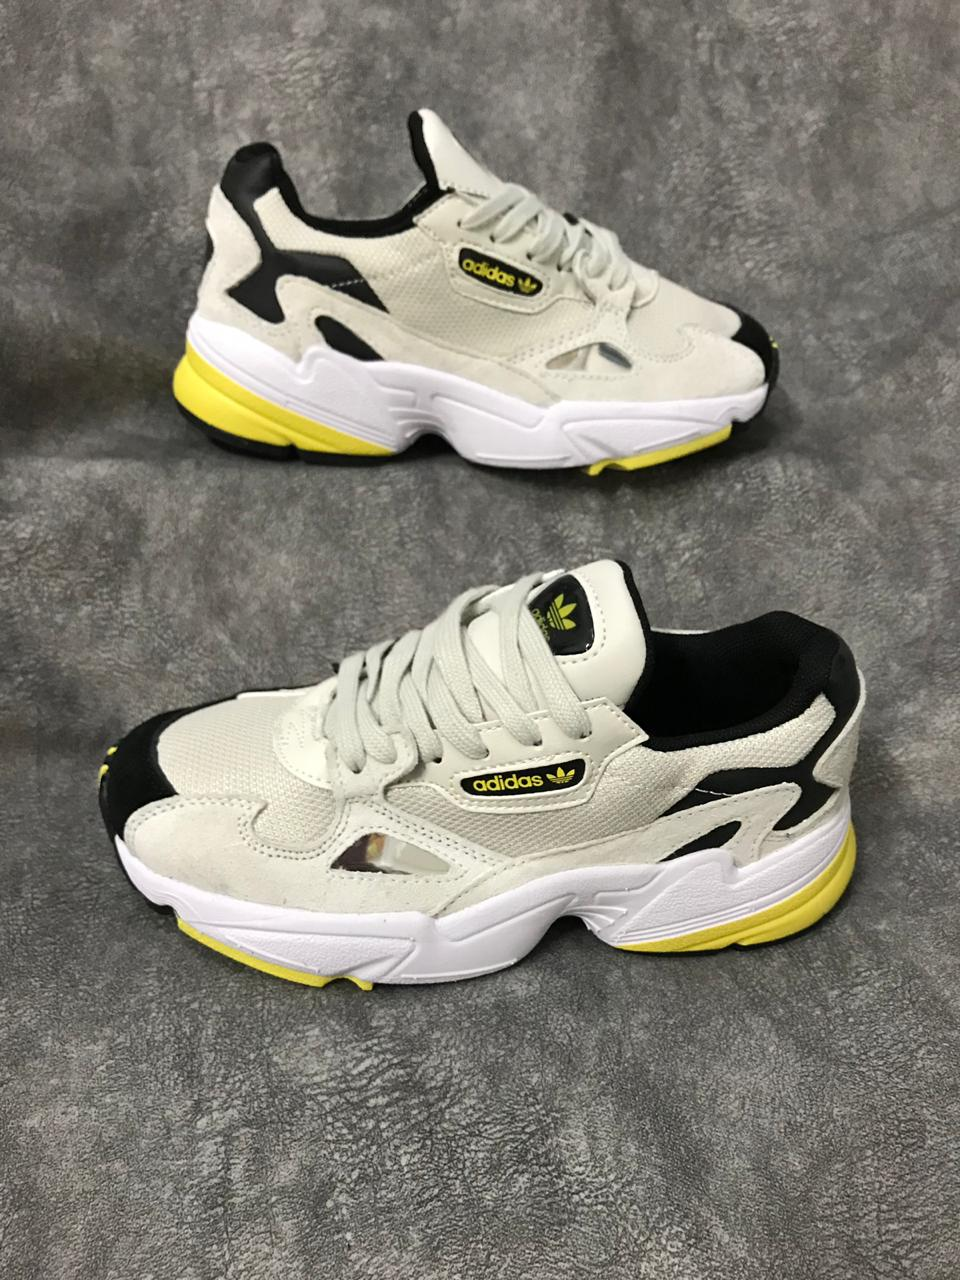 low priced cc000 2e784 ADIDAS FALCON DAMA Y CABALLERO - Zapatillas en Cali